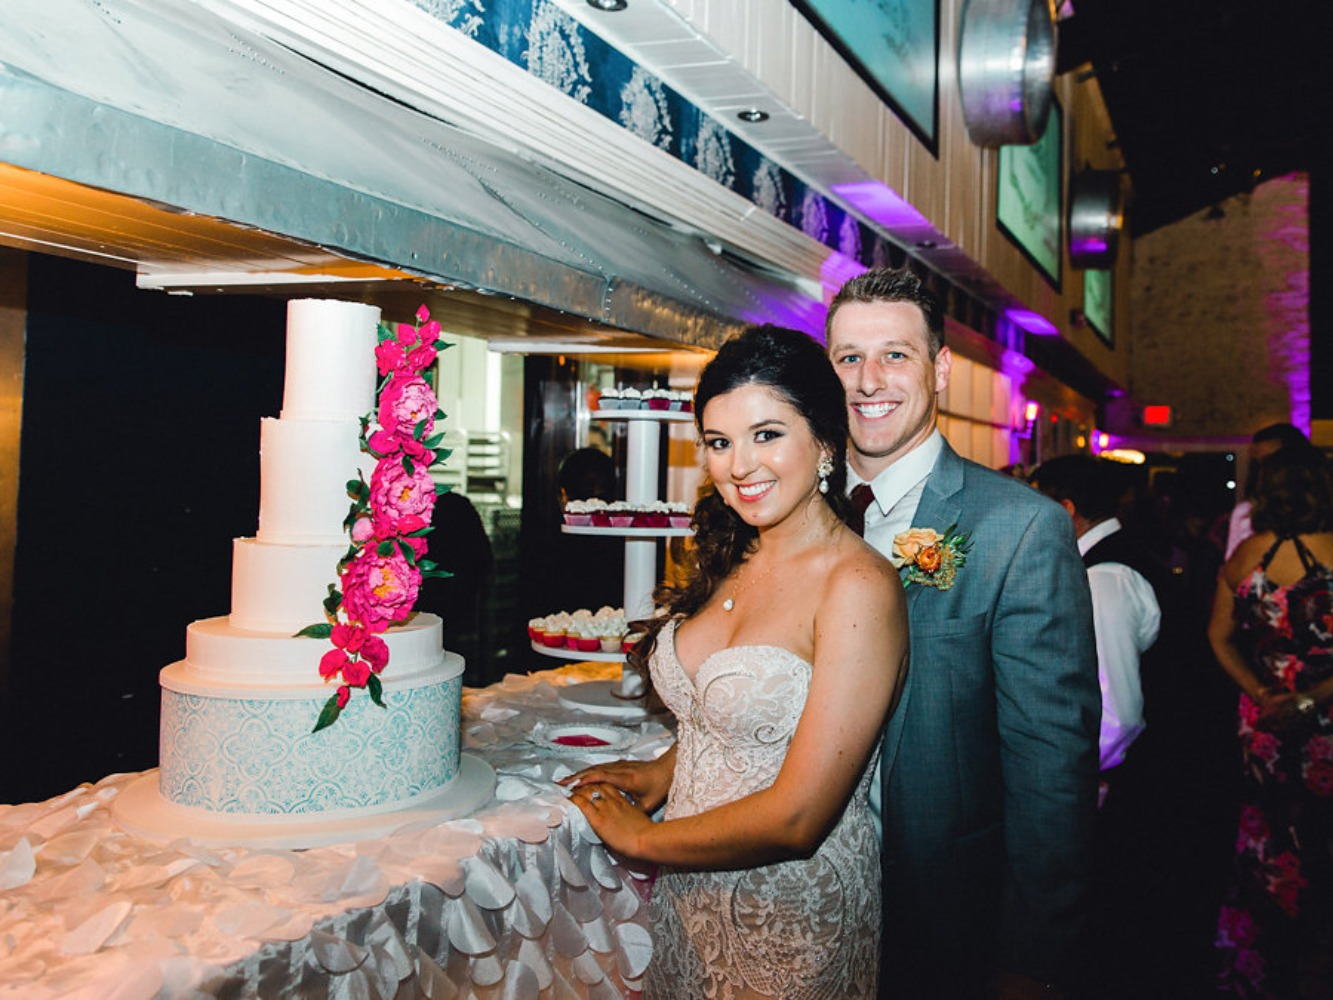 cute candid wedding couple and their wedding cake